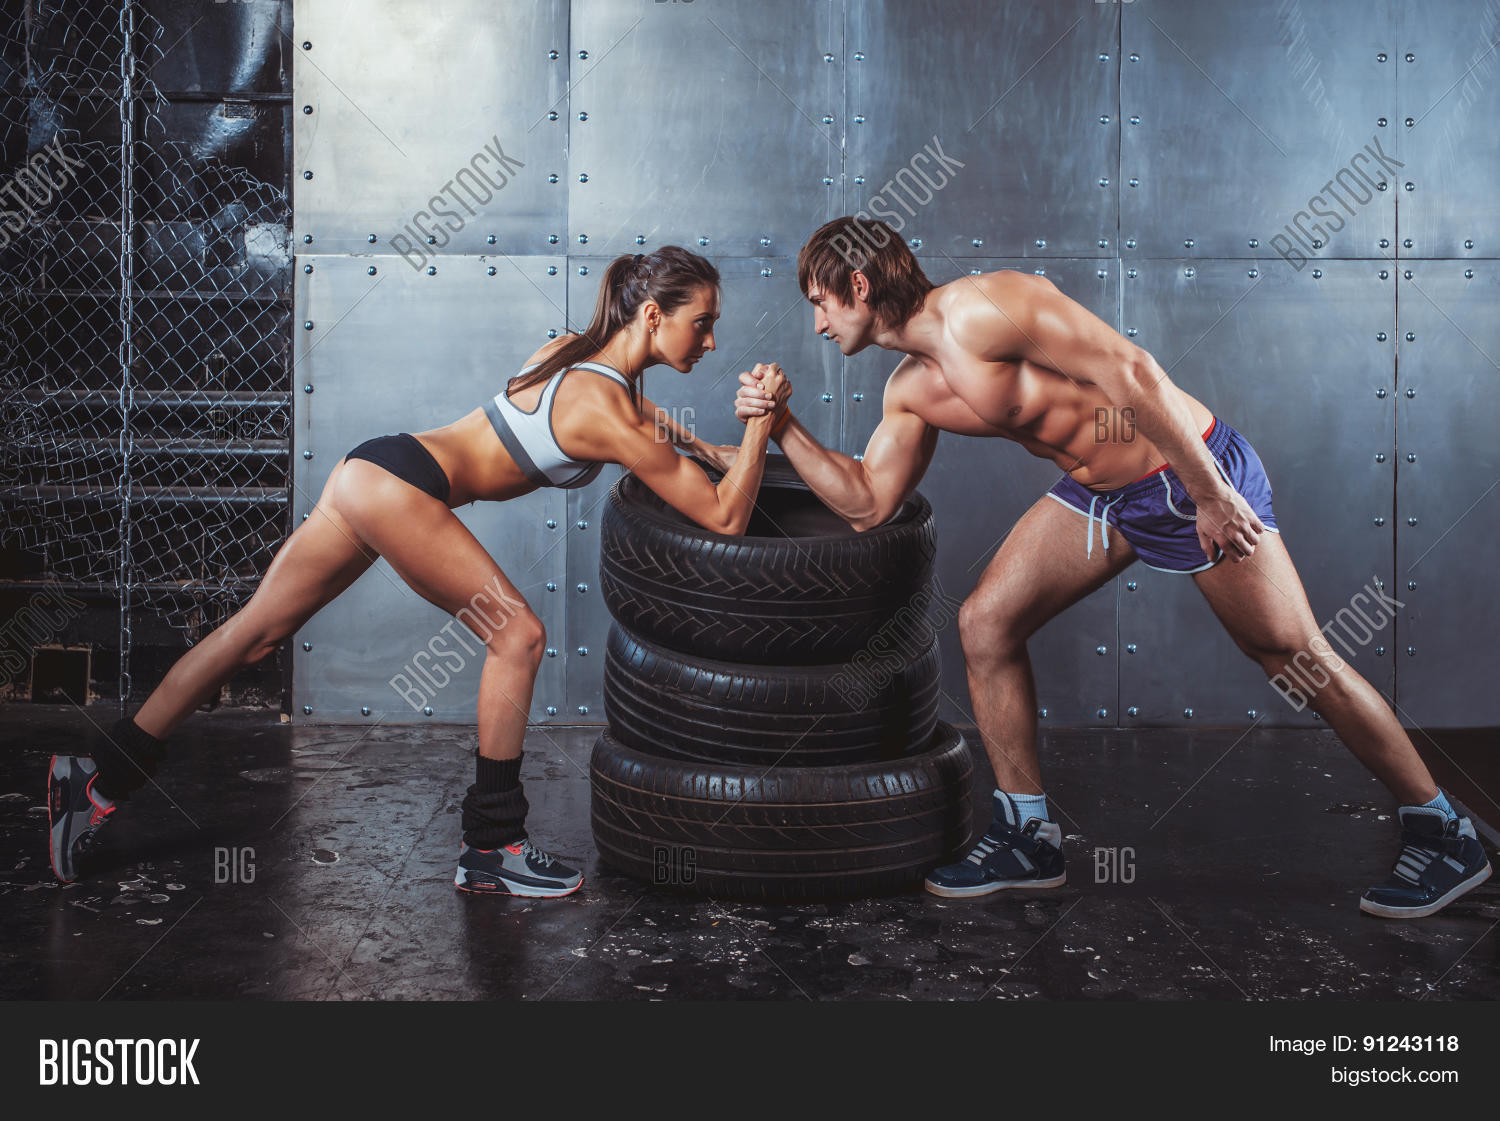 Athlete Muscular Image & Photo (Free Trial) | Bigstock